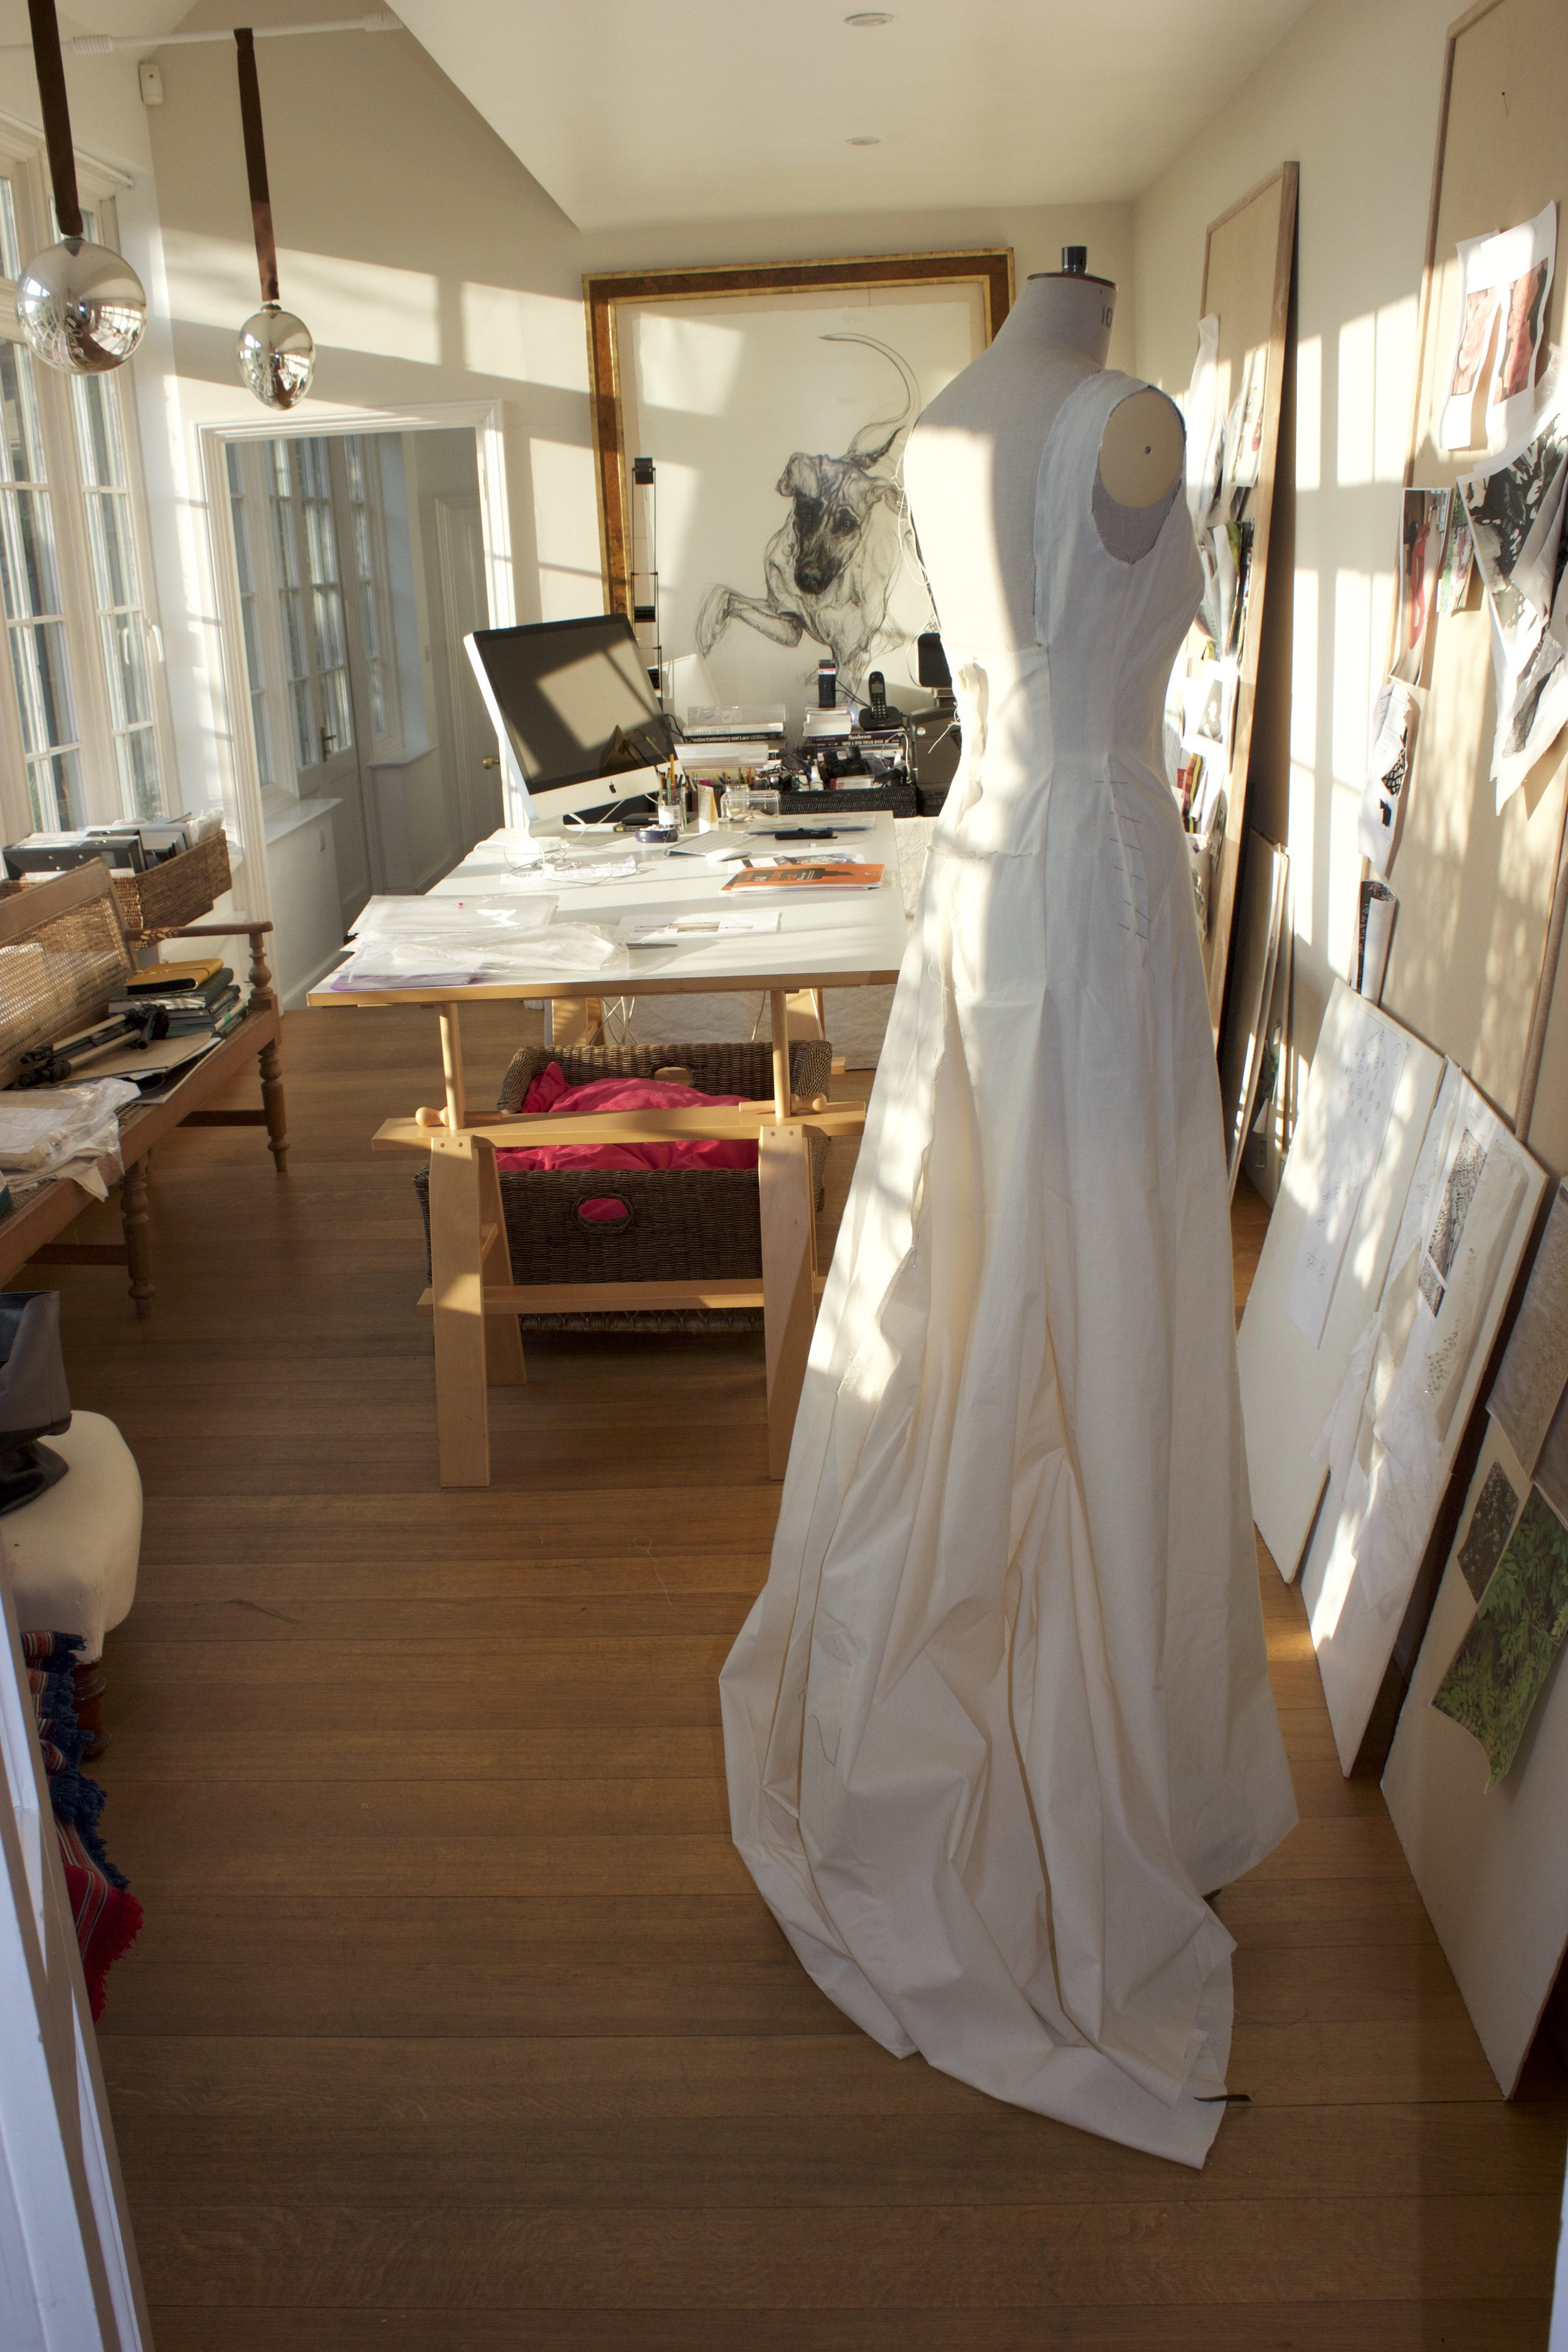 WORKING ON A TOILE IN THE PEACE AND QUIET OF HIS STUDIO OVERLOOKING THE GARDENS